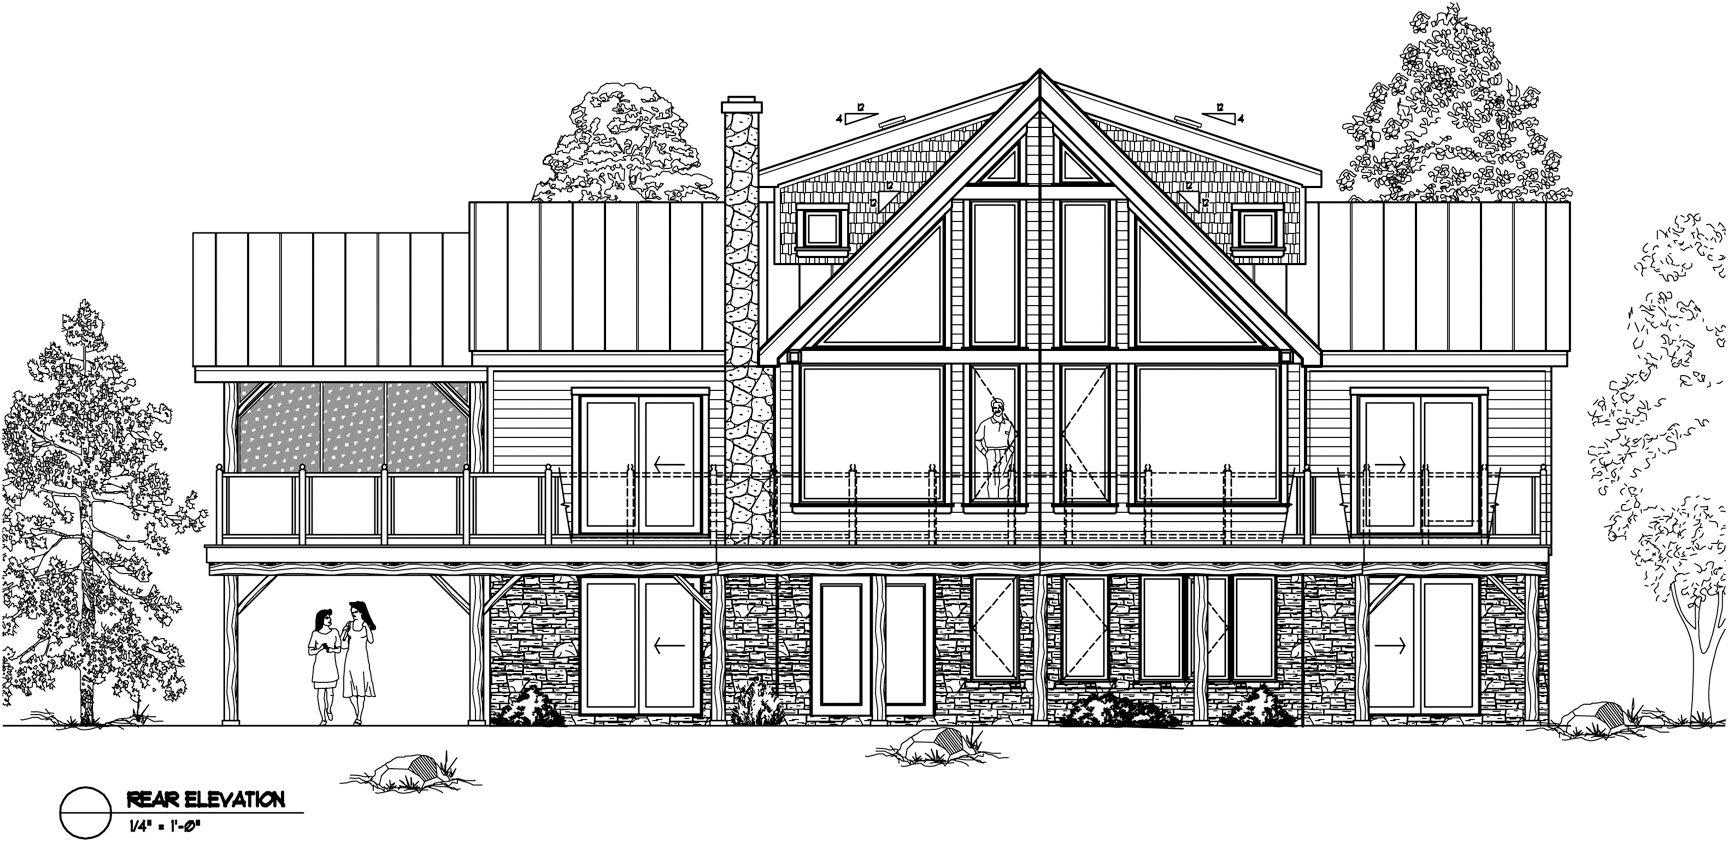 Normerica Timber Frames, House Plan, The Lennox 3546, Rear Elevation